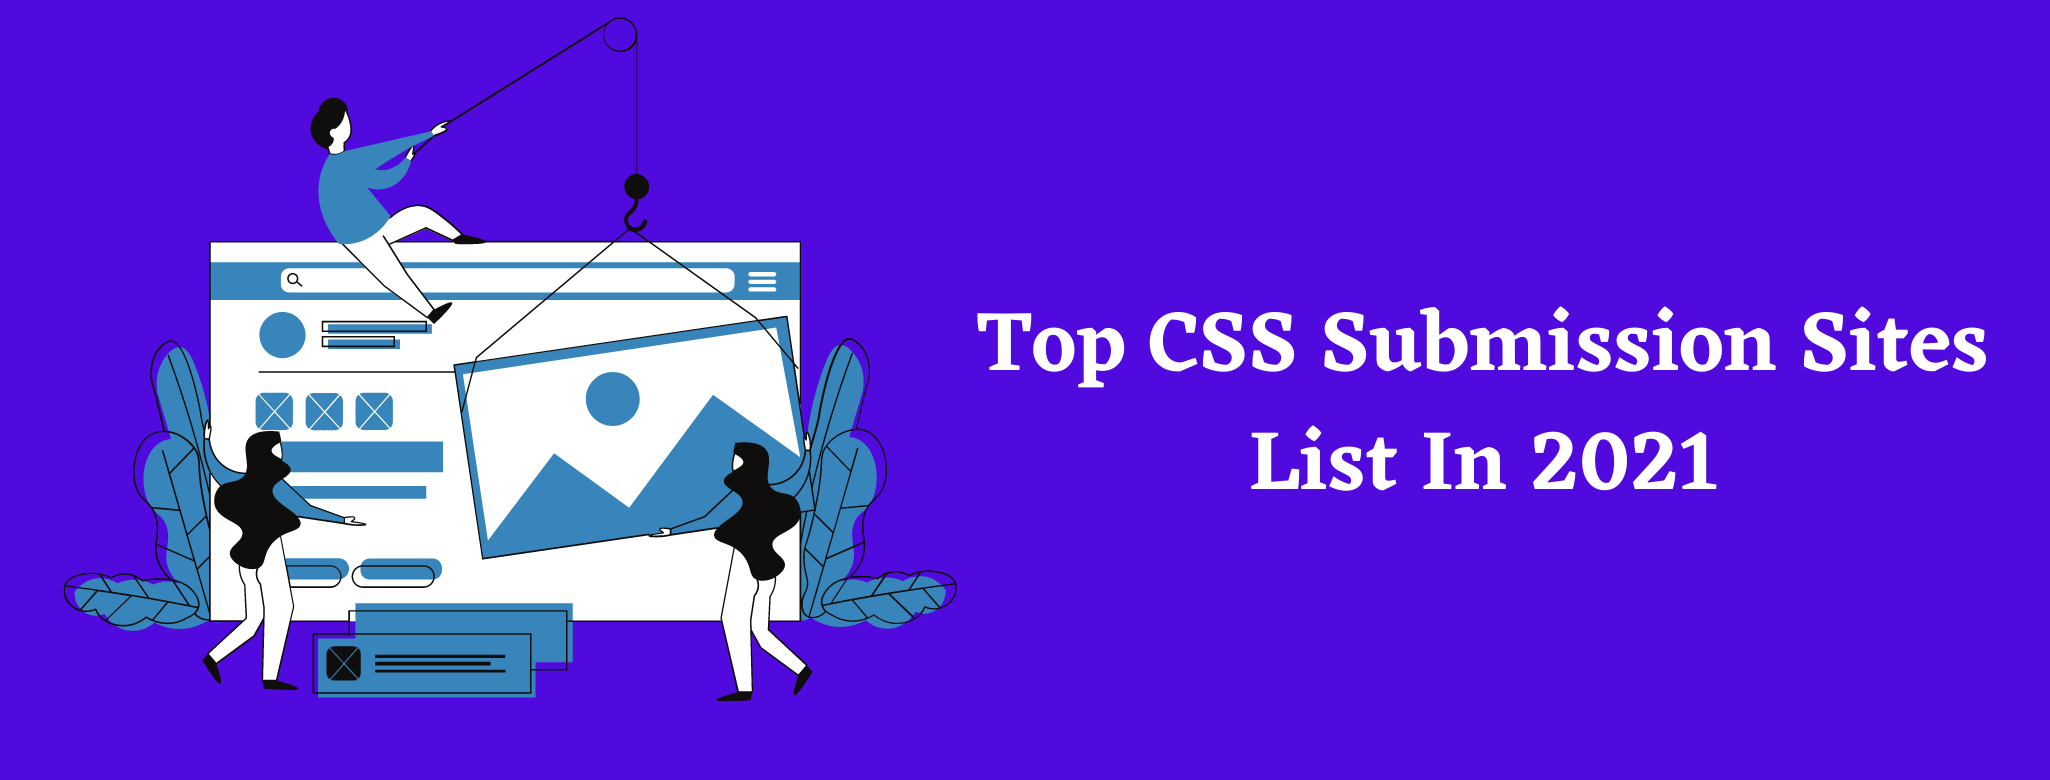 CSS Submission Sites List In 2021